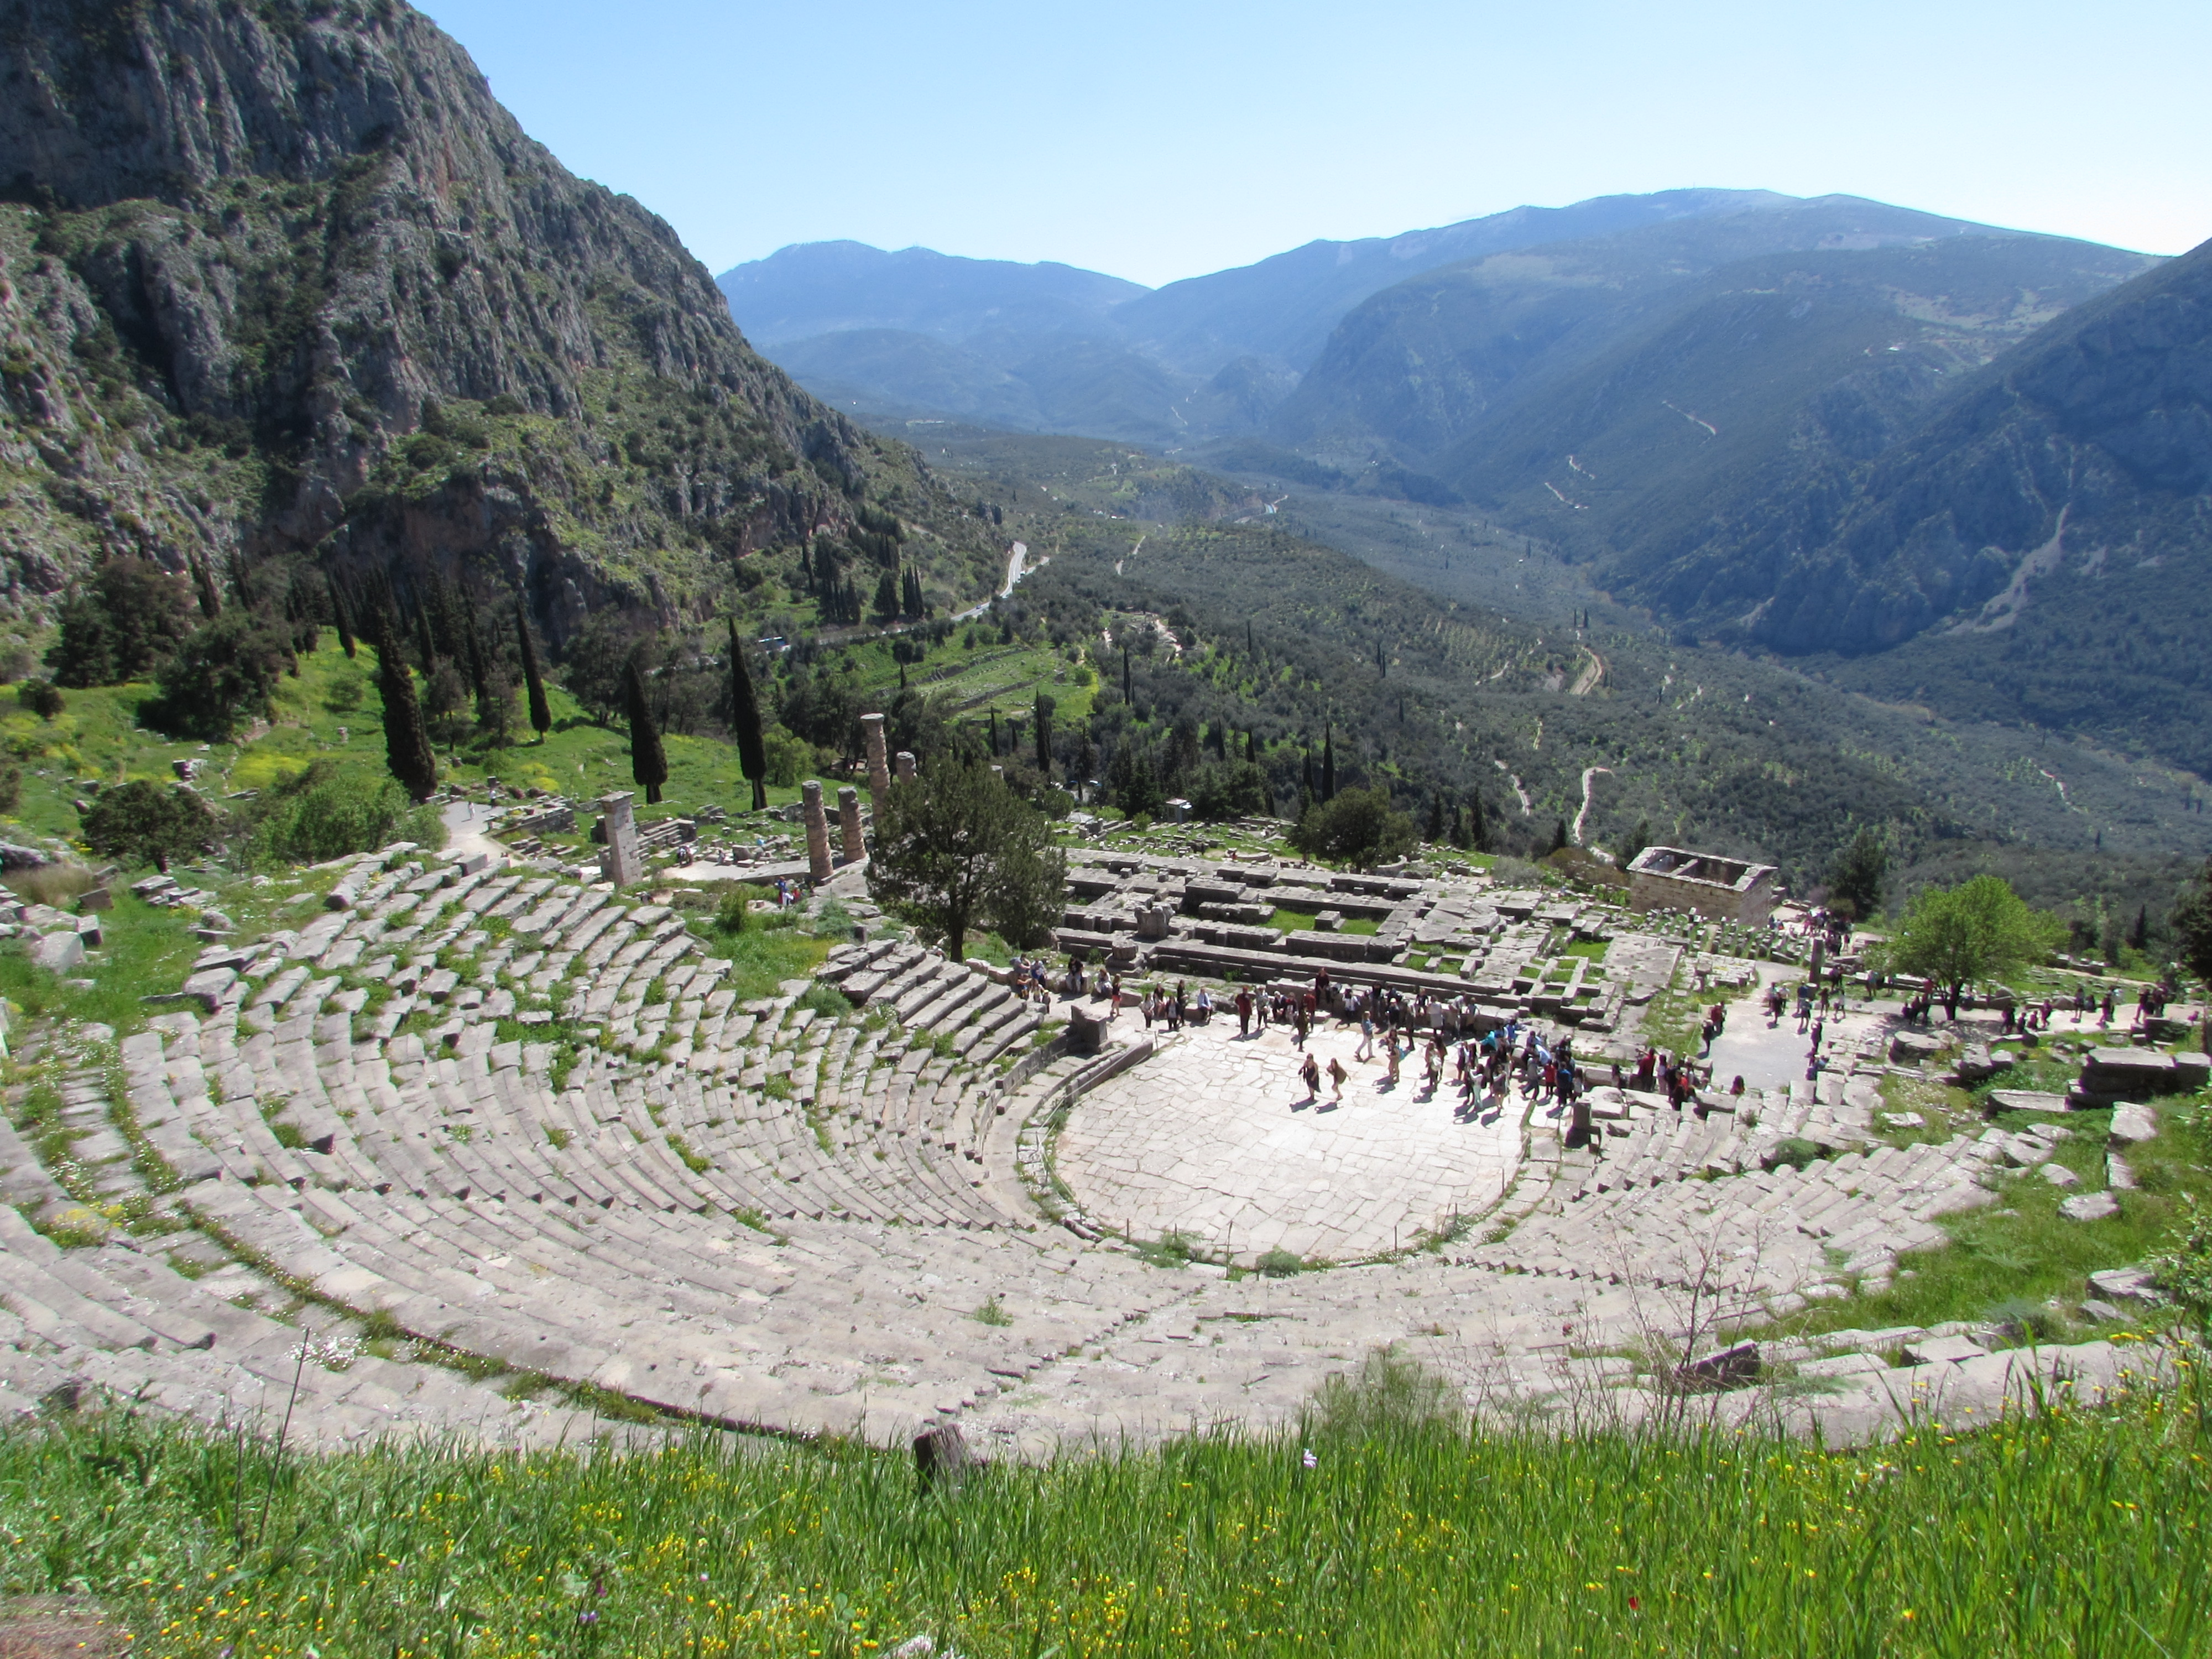 The Theatre of Delphi has incredible views out over the valley near the archaeological site of Delphi, Greece